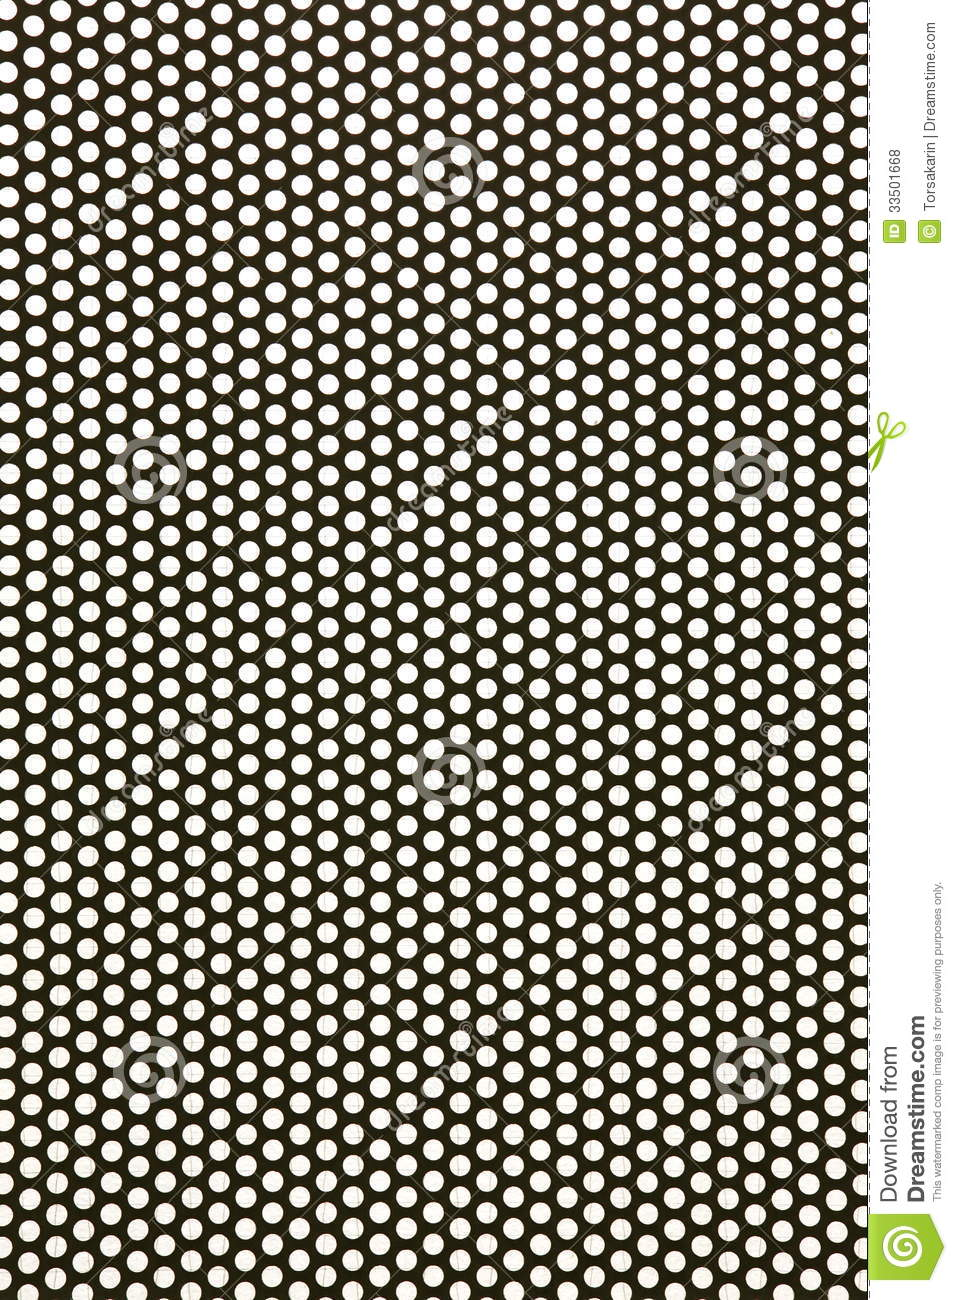 Metal Mesh Screen : Metal mesh texture stock photo image of equal perforated